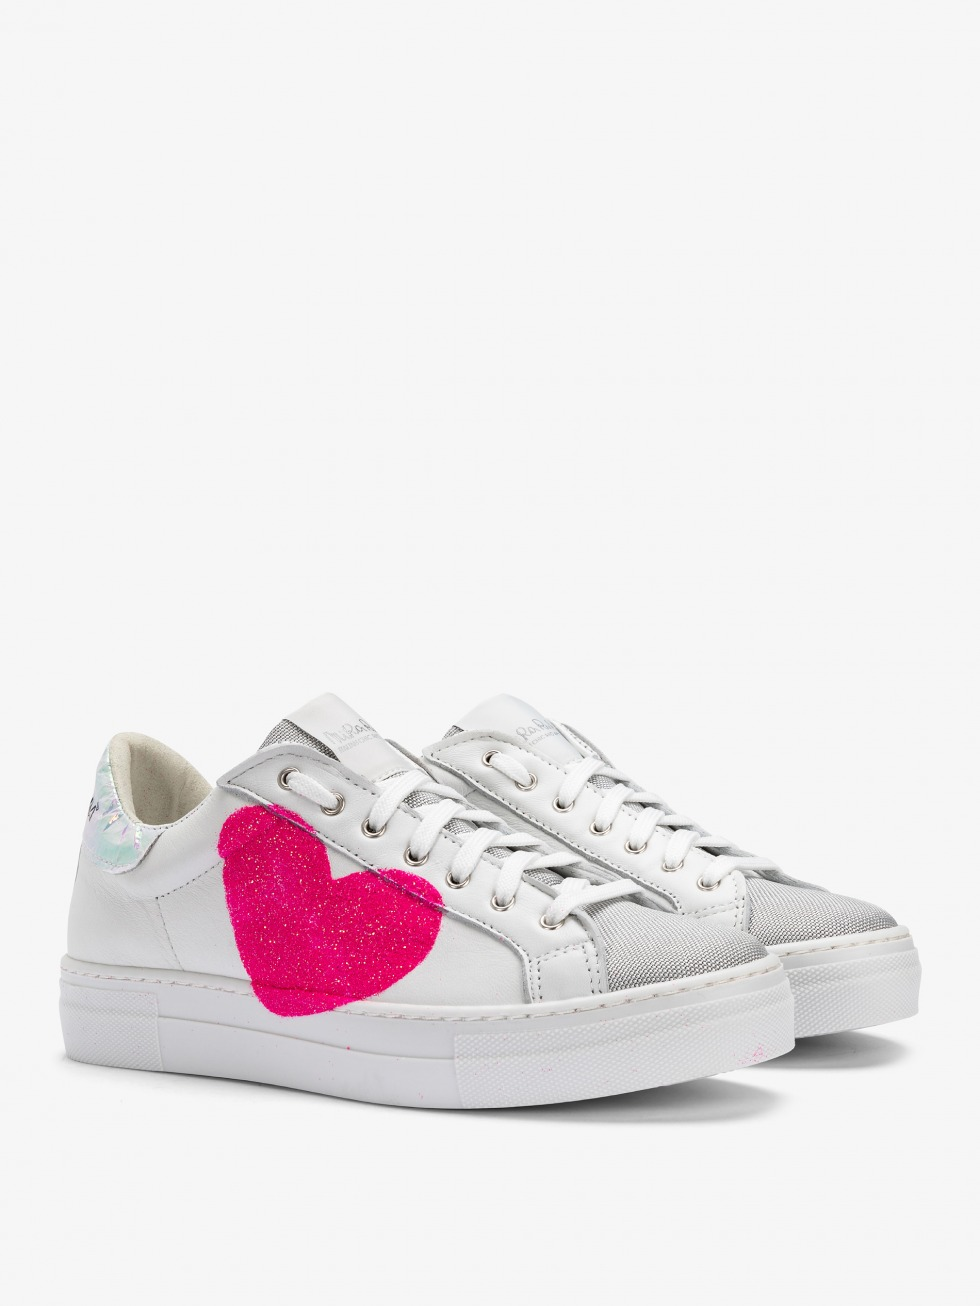 Martini Sneakers - Urania Heart